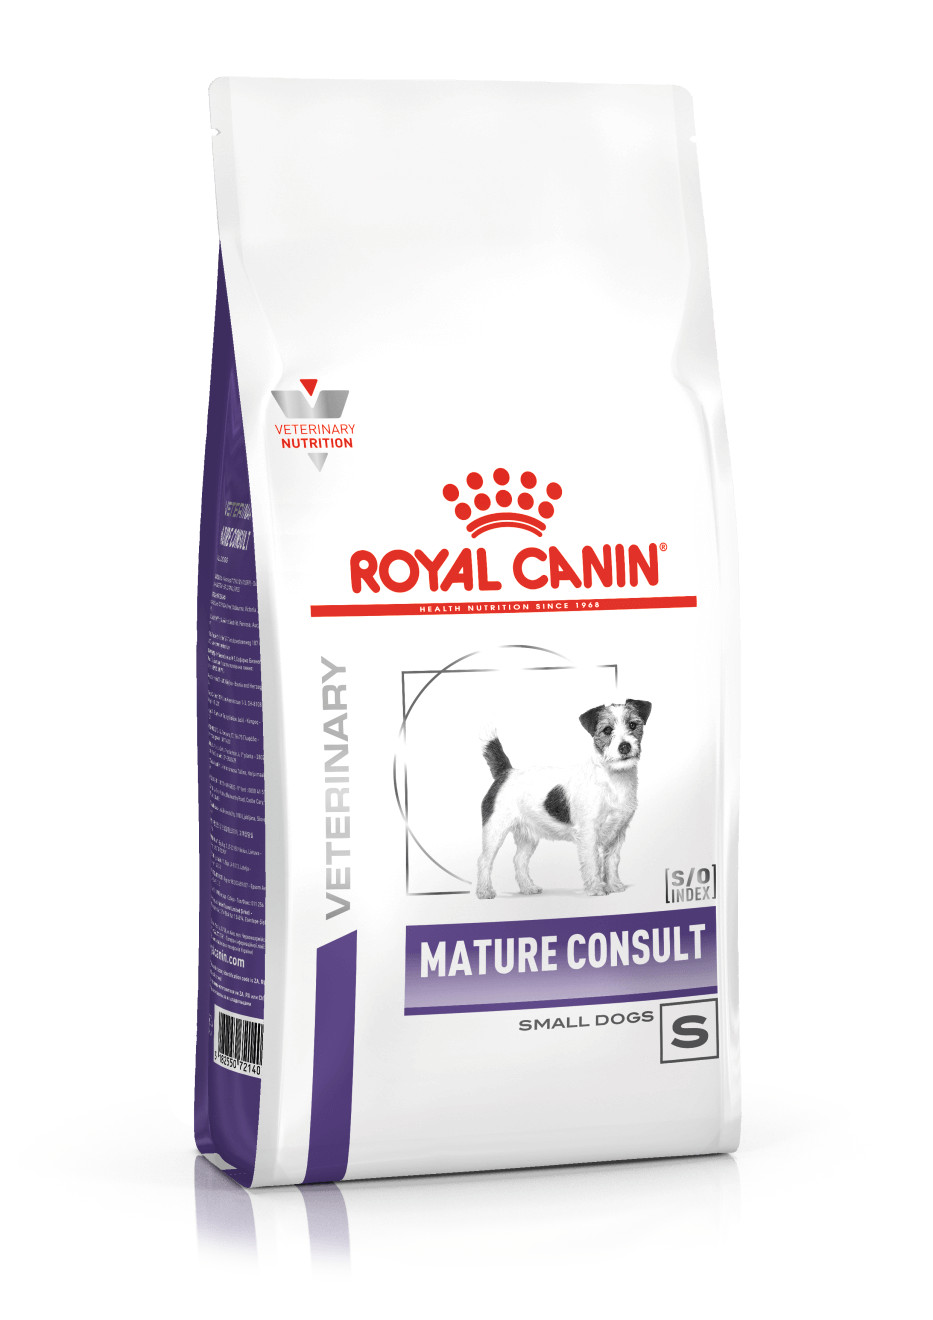 Royal Canin Veterinary Mature Consult Small Dogs Hundefutter